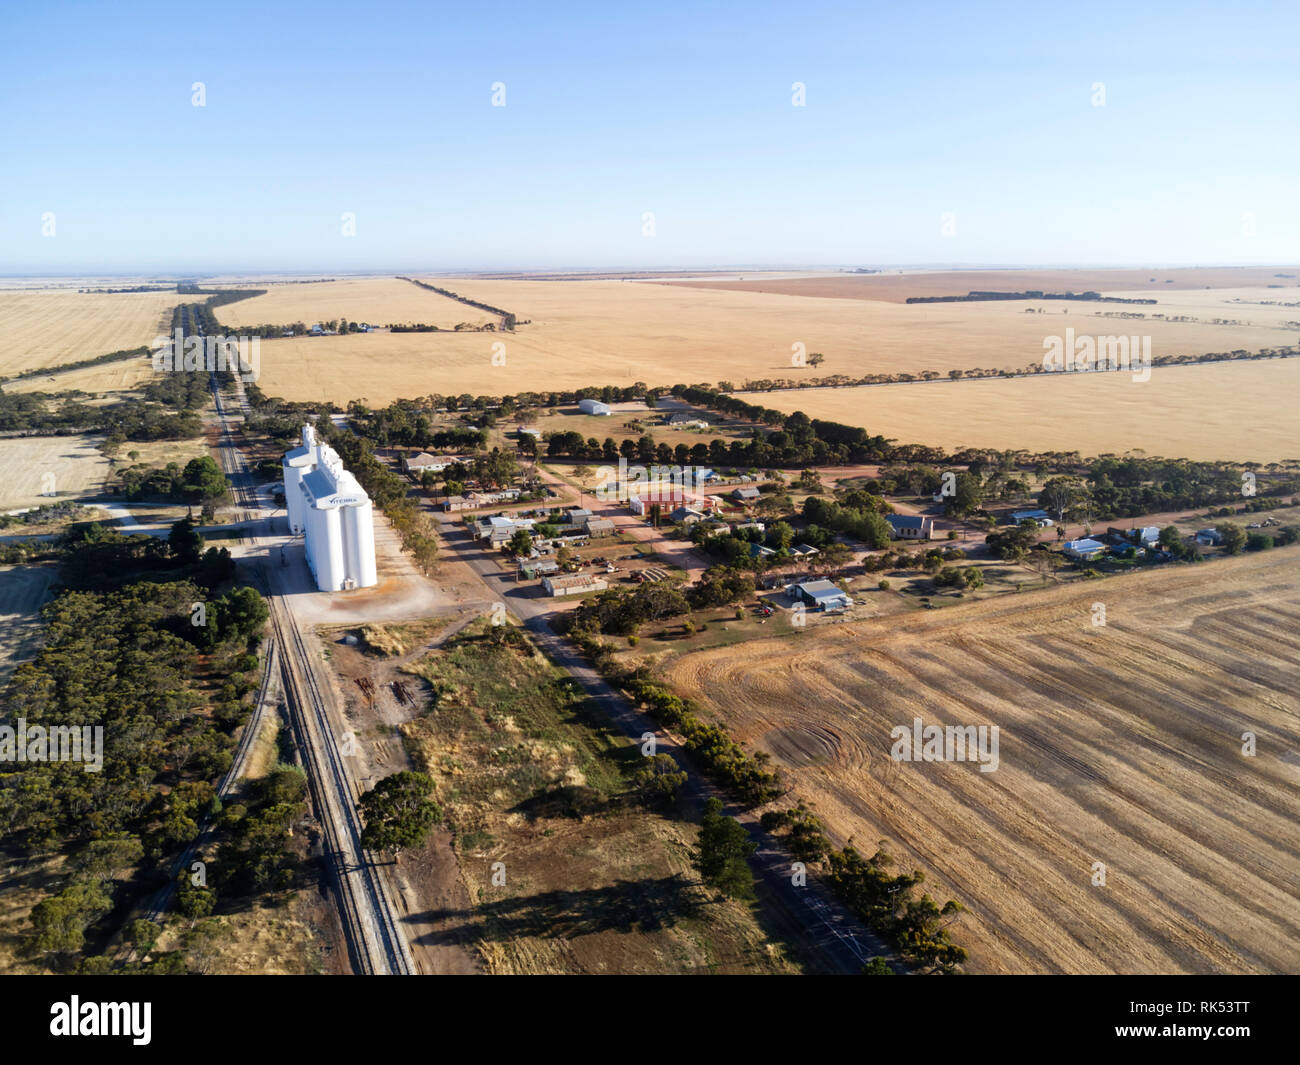 The Grain silos and railway line at Yeelanna Eyre Peninsula South Australia - Stock Image